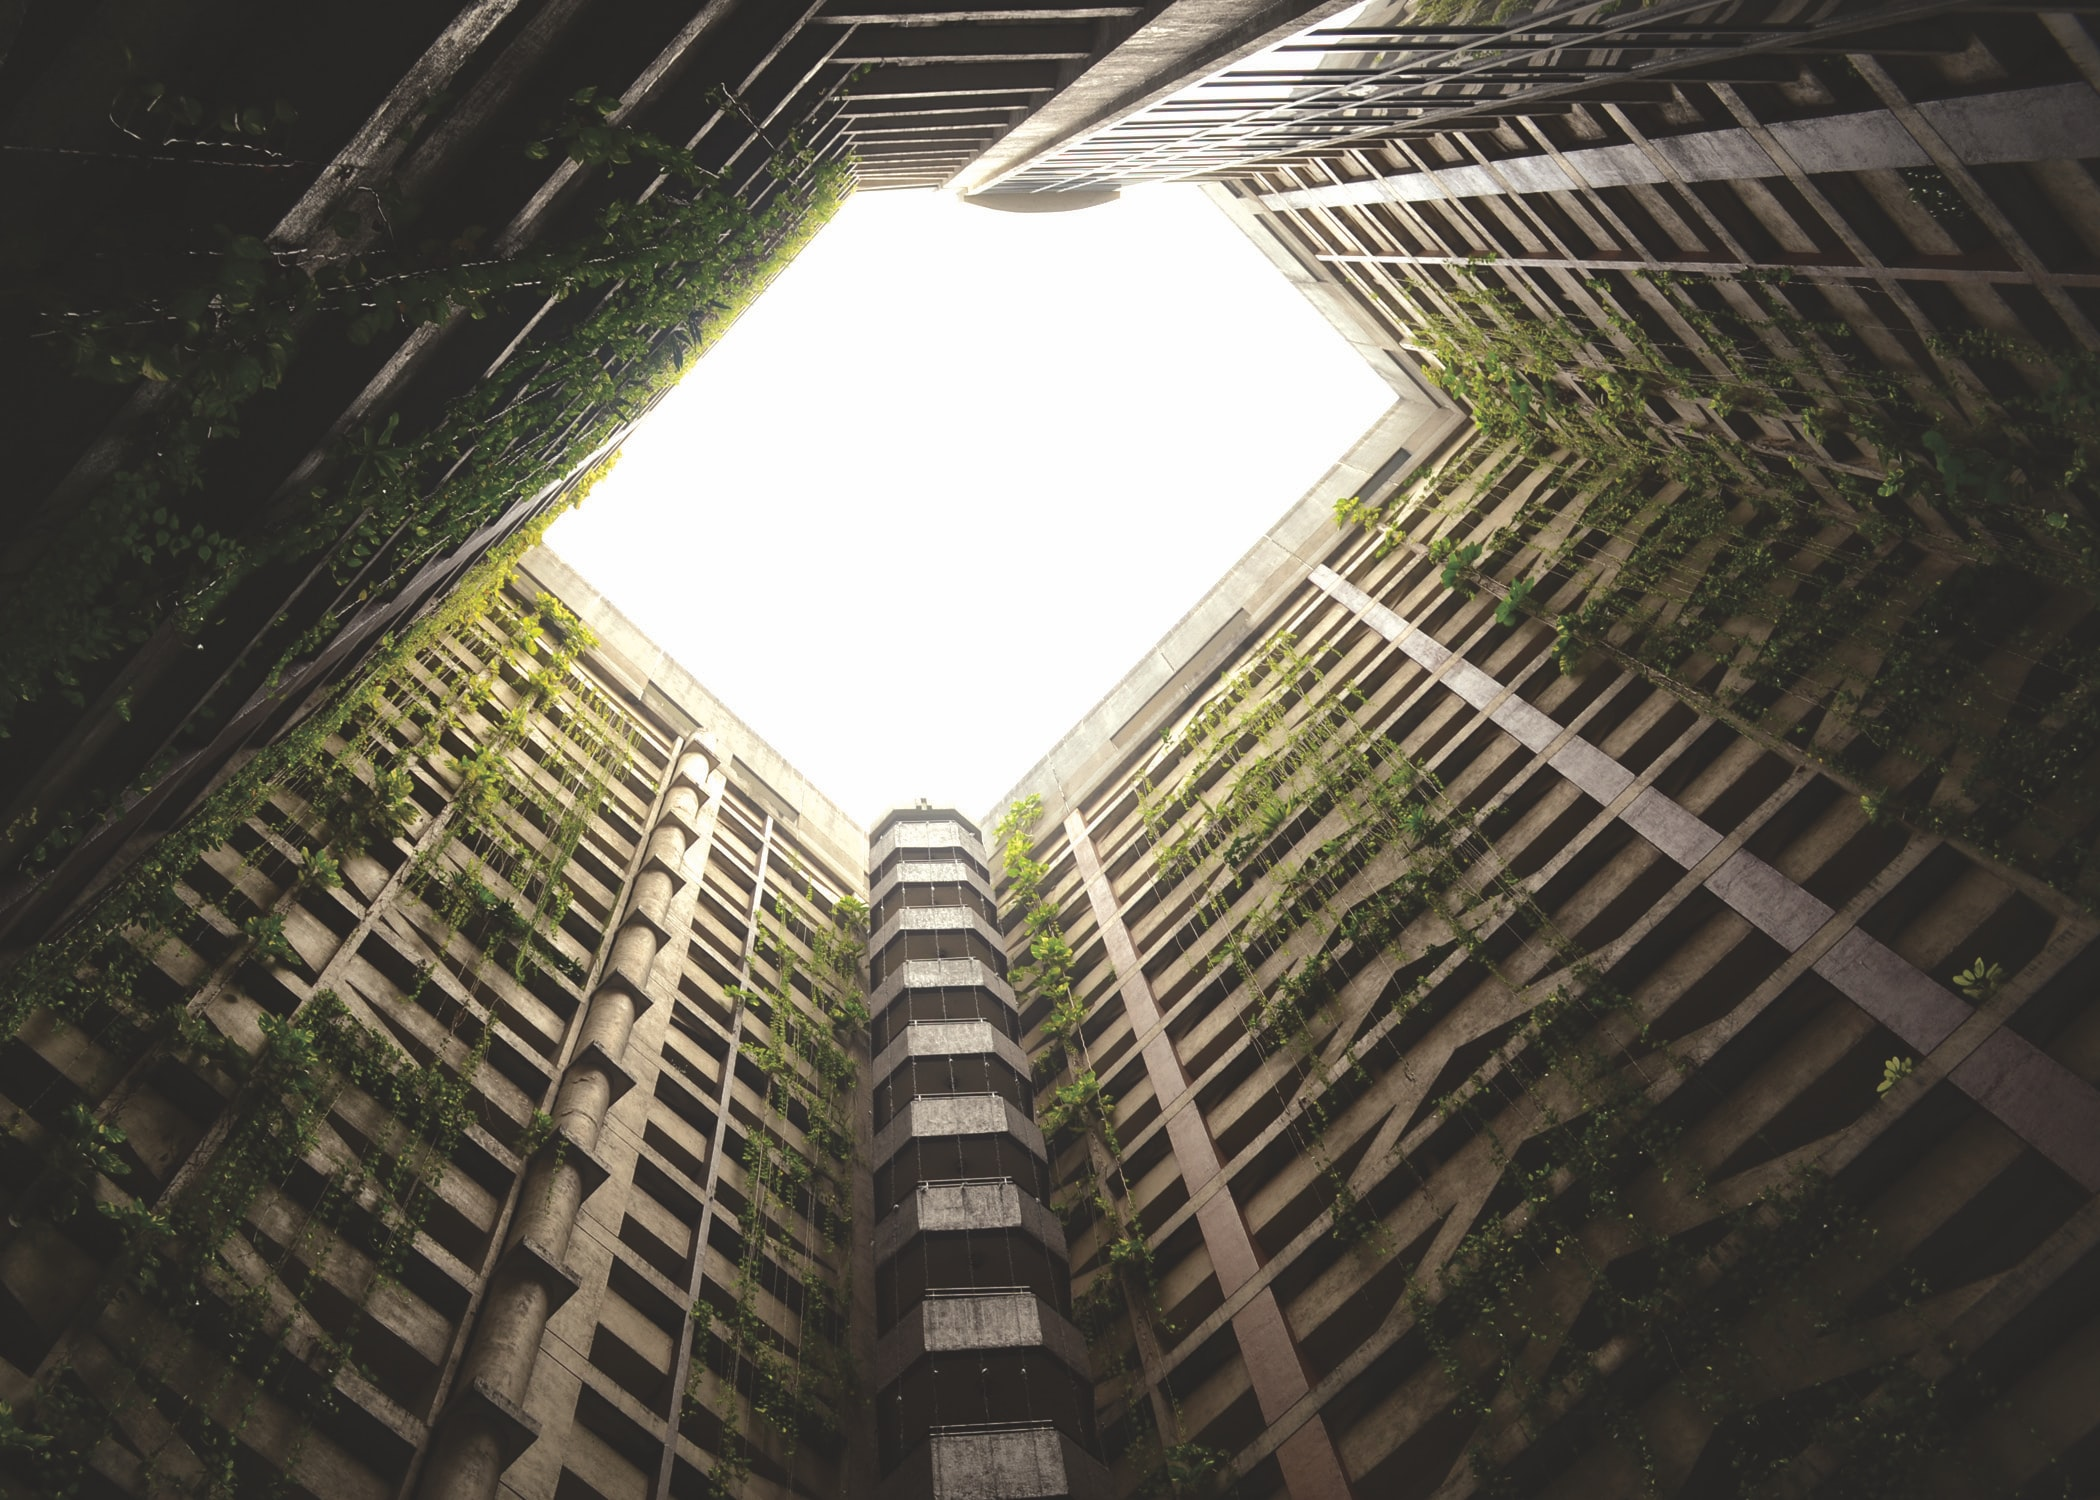 An abandoned building with overgrown vines